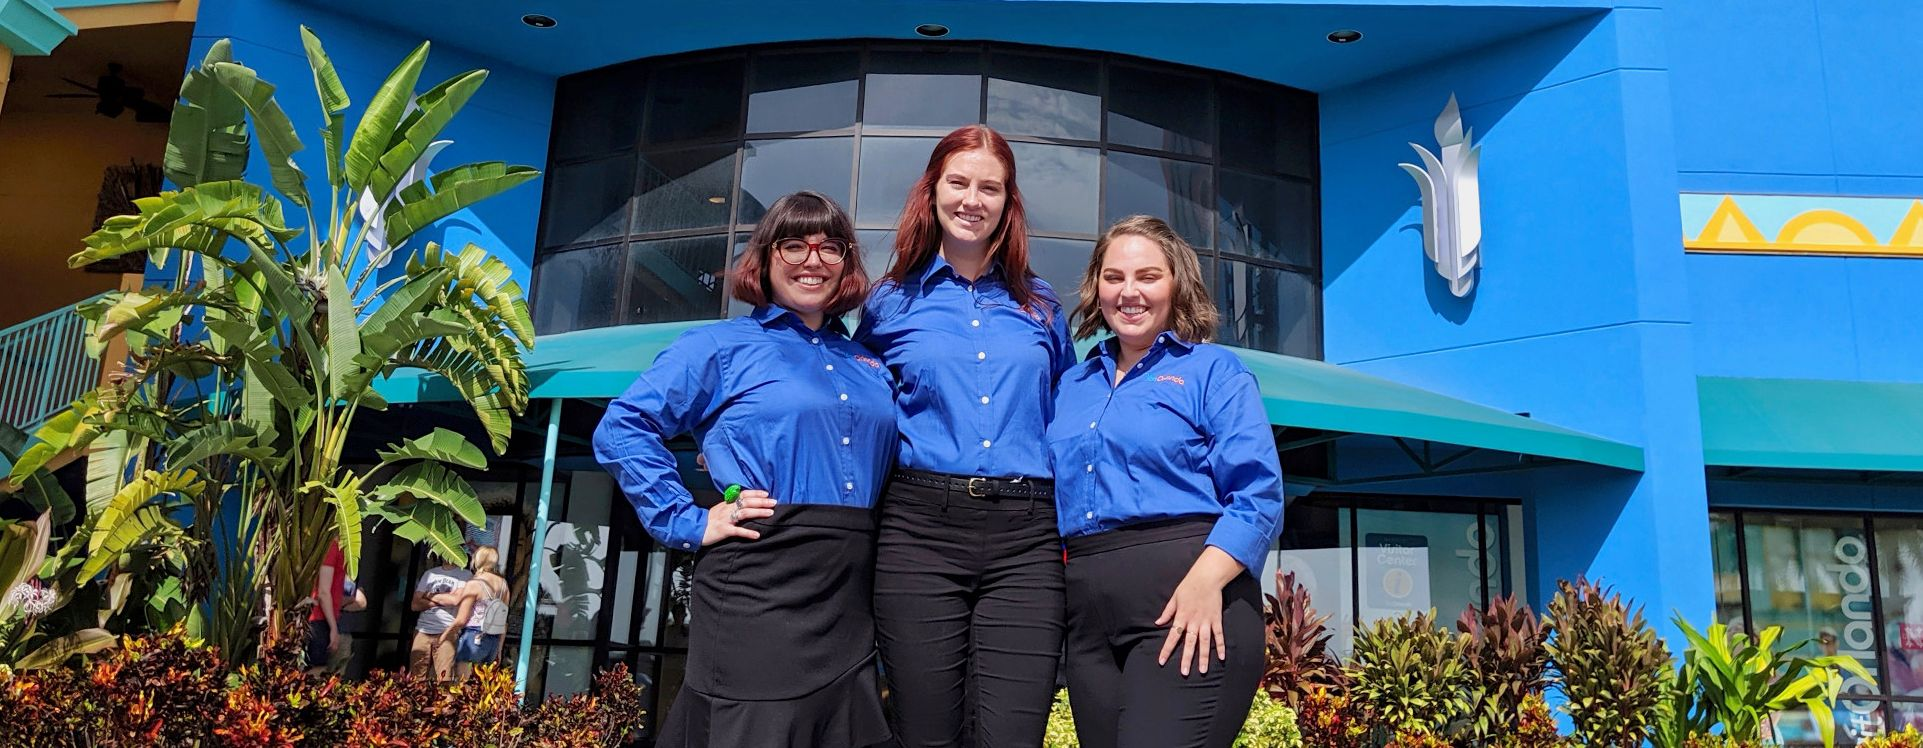 Three young ladies that represent ambassadors of MORlando standing together in front of the Visit Orlando Official Visitor Center on International Drive